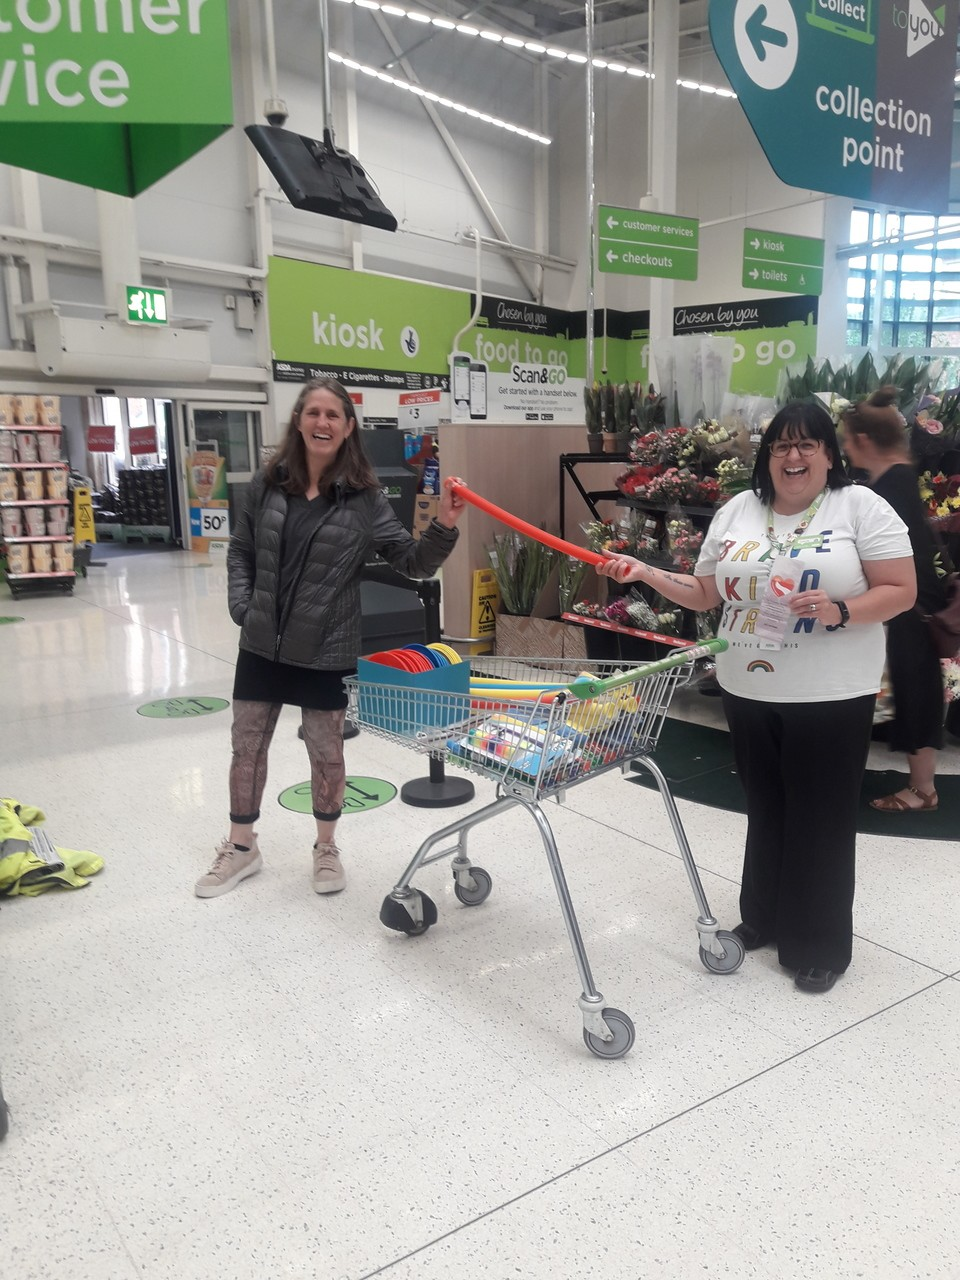 Tolladine mission donation | Asda Worcester